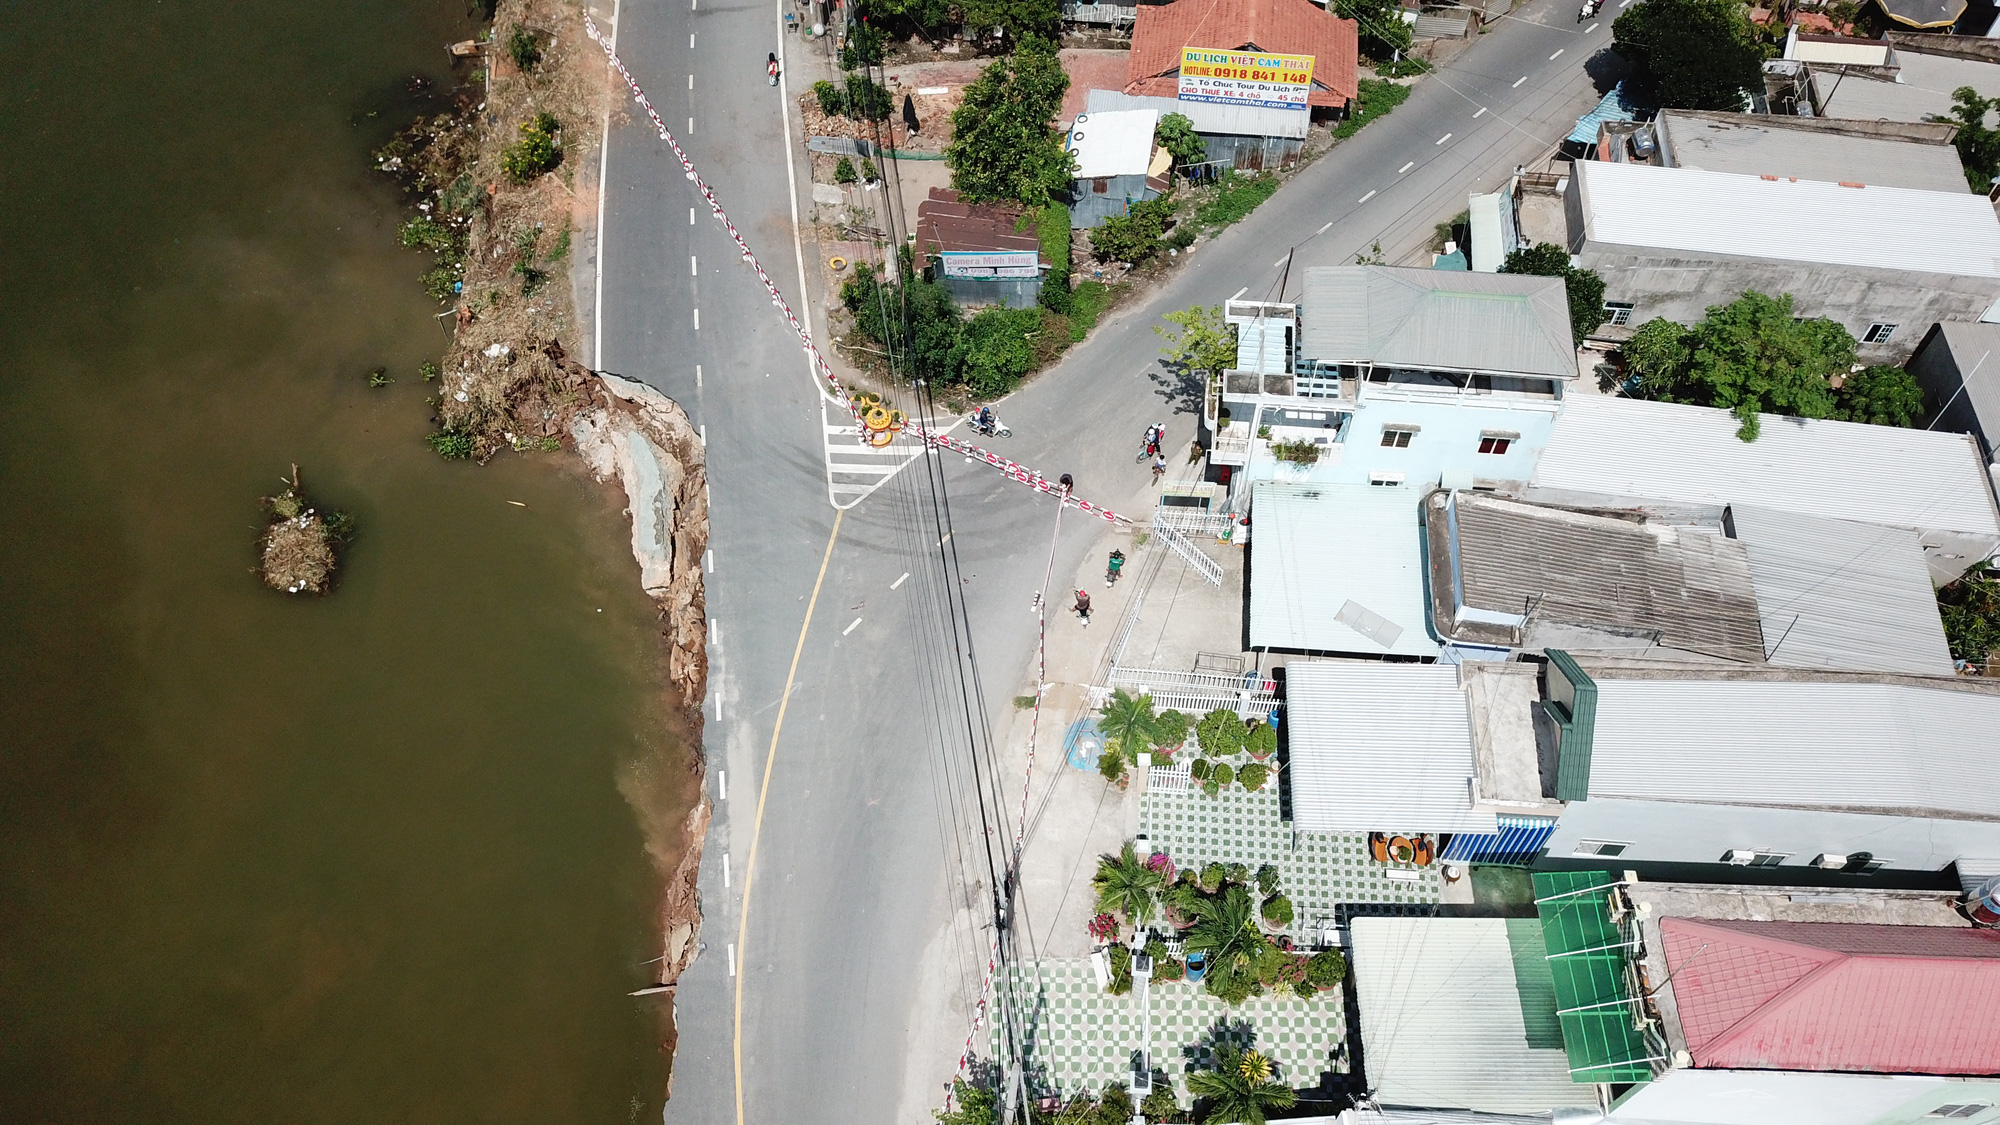 A bird's-eye view of the subsidence along provincial highway 91 in An Giang Province, Vietnam, May 27, 2020. Photo: Chi Quoc / Tuoi Tre